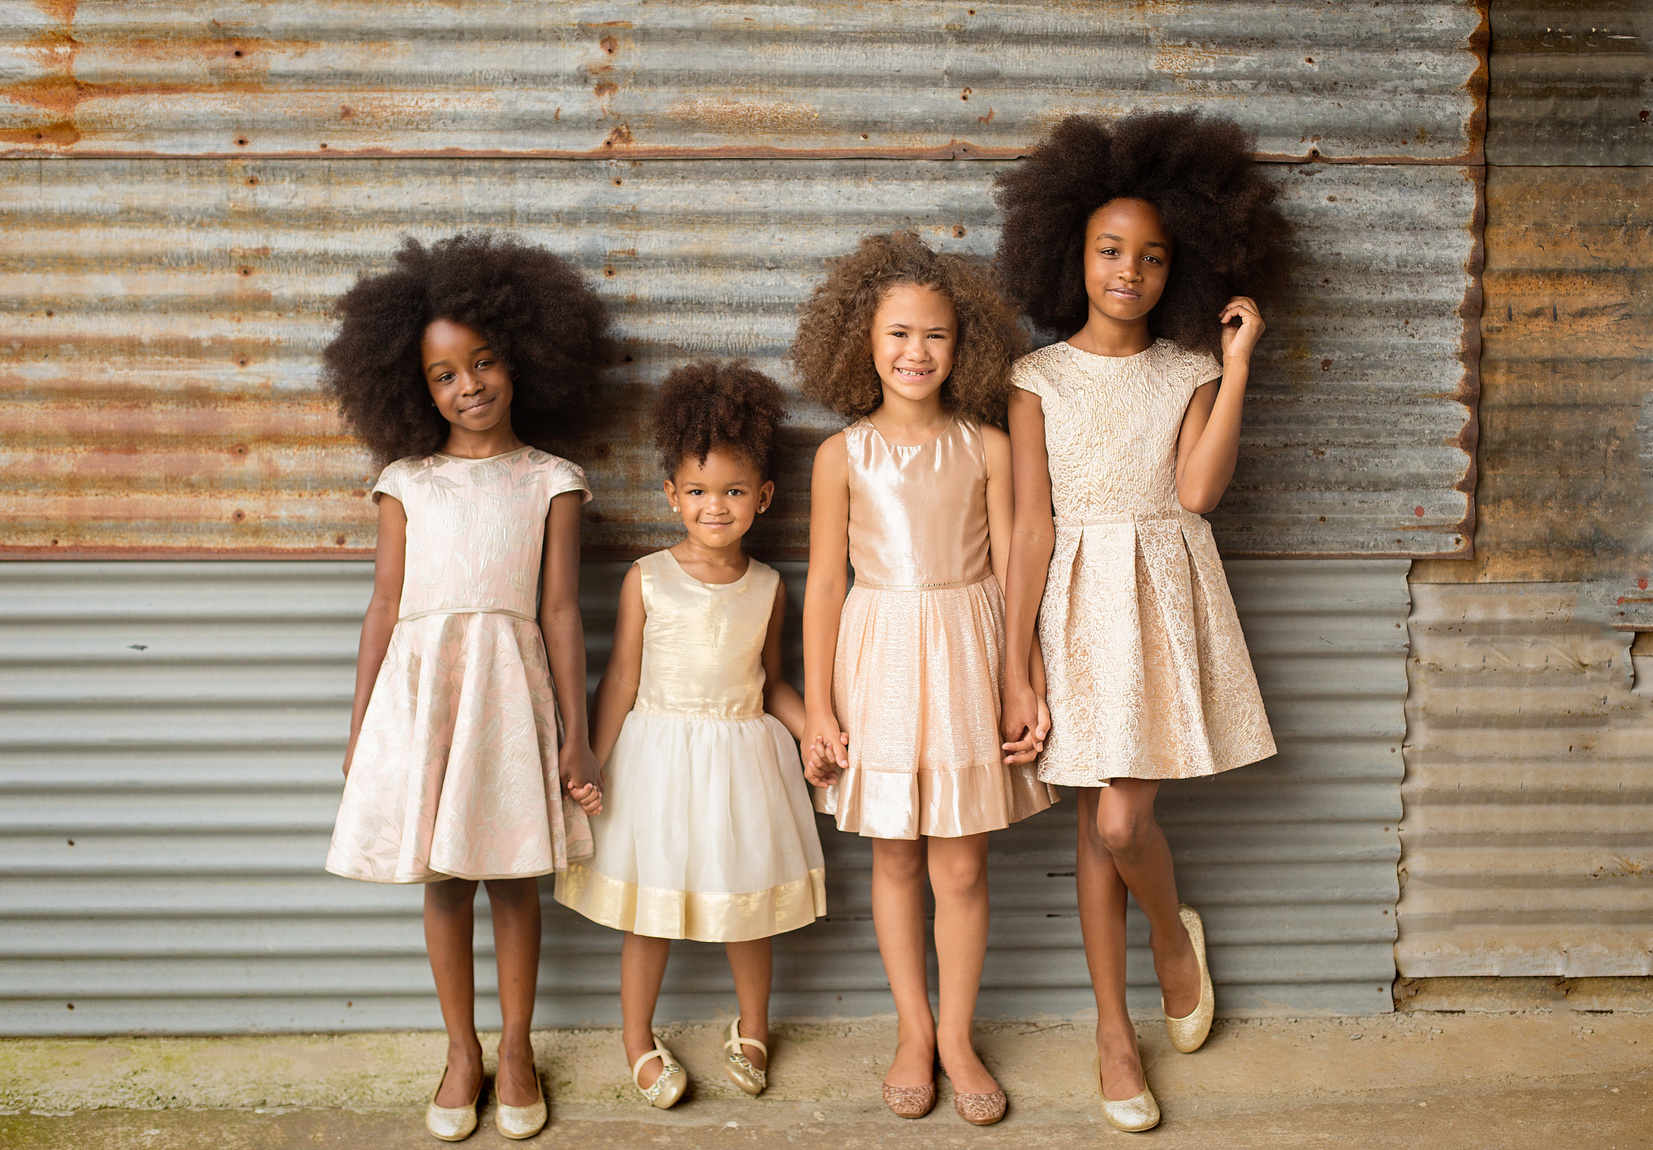 Building Up Our Brown Skin Girls: Why We Should Talk To ...